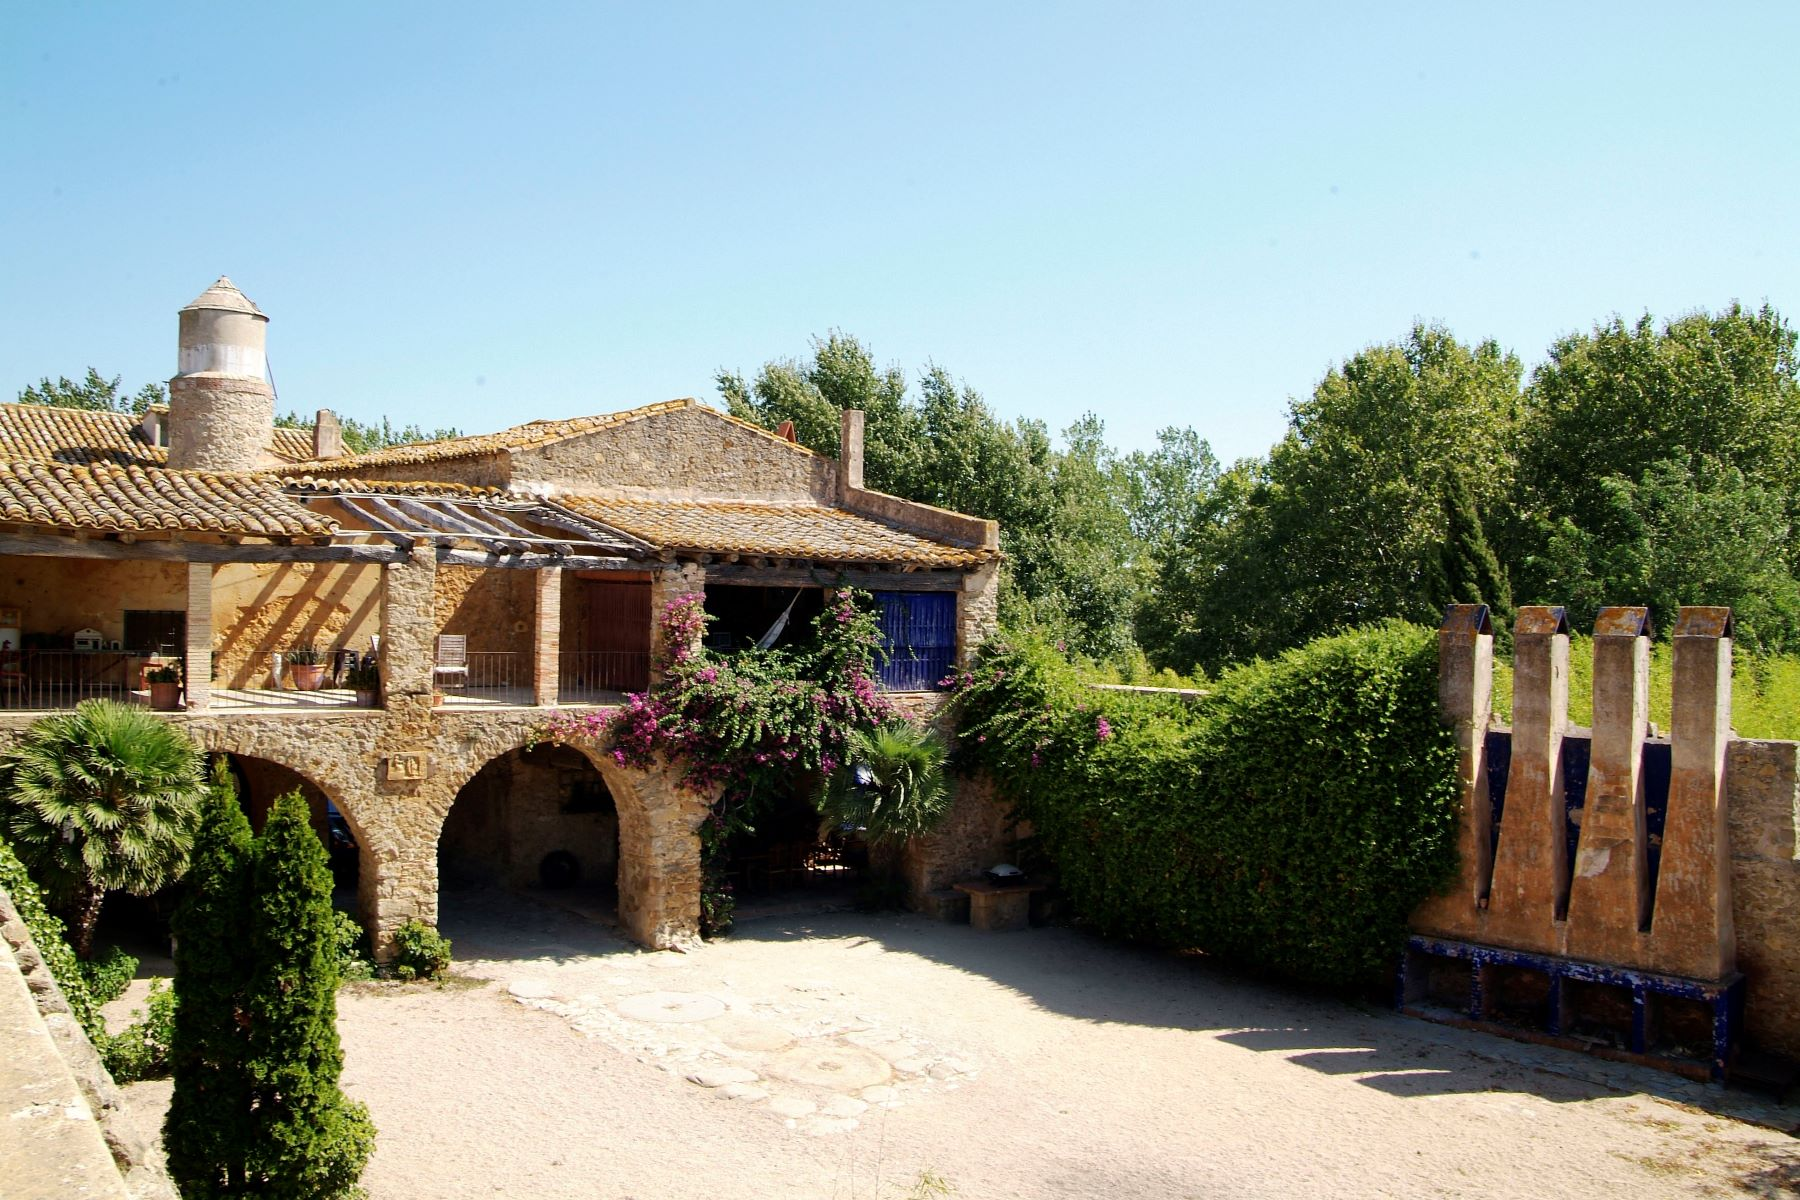 Single Family Home for Sale at A charming castle in the medieval village of Pals Other Cities Baix Emporda, Barcelona, 17001 Spain